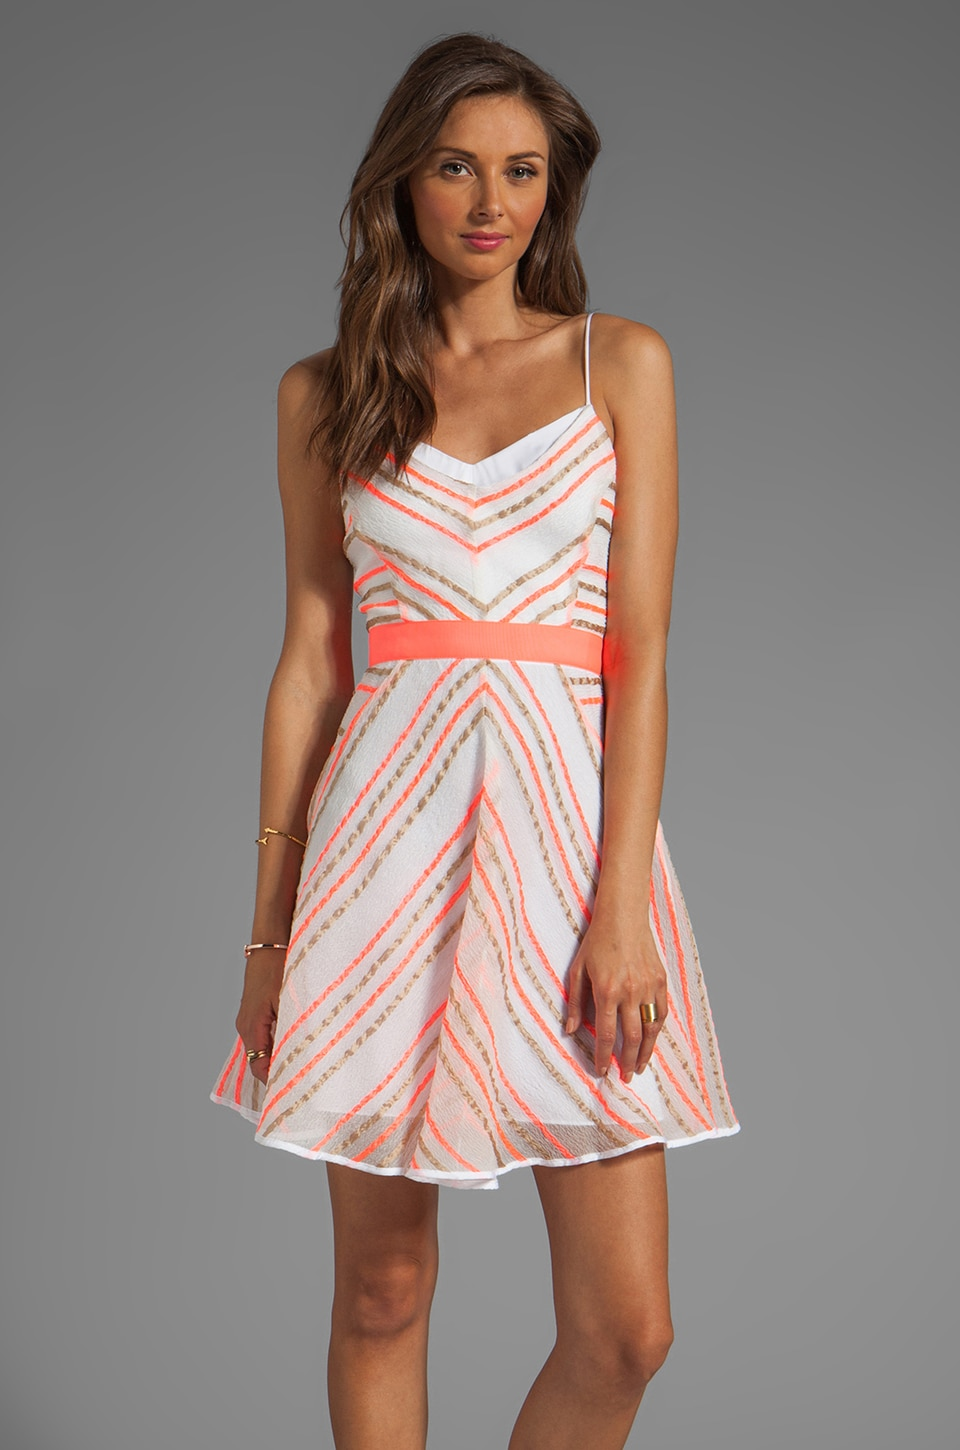 MILLY Neon Stripe Jacquard Sadie Double Layer Dress in Multi